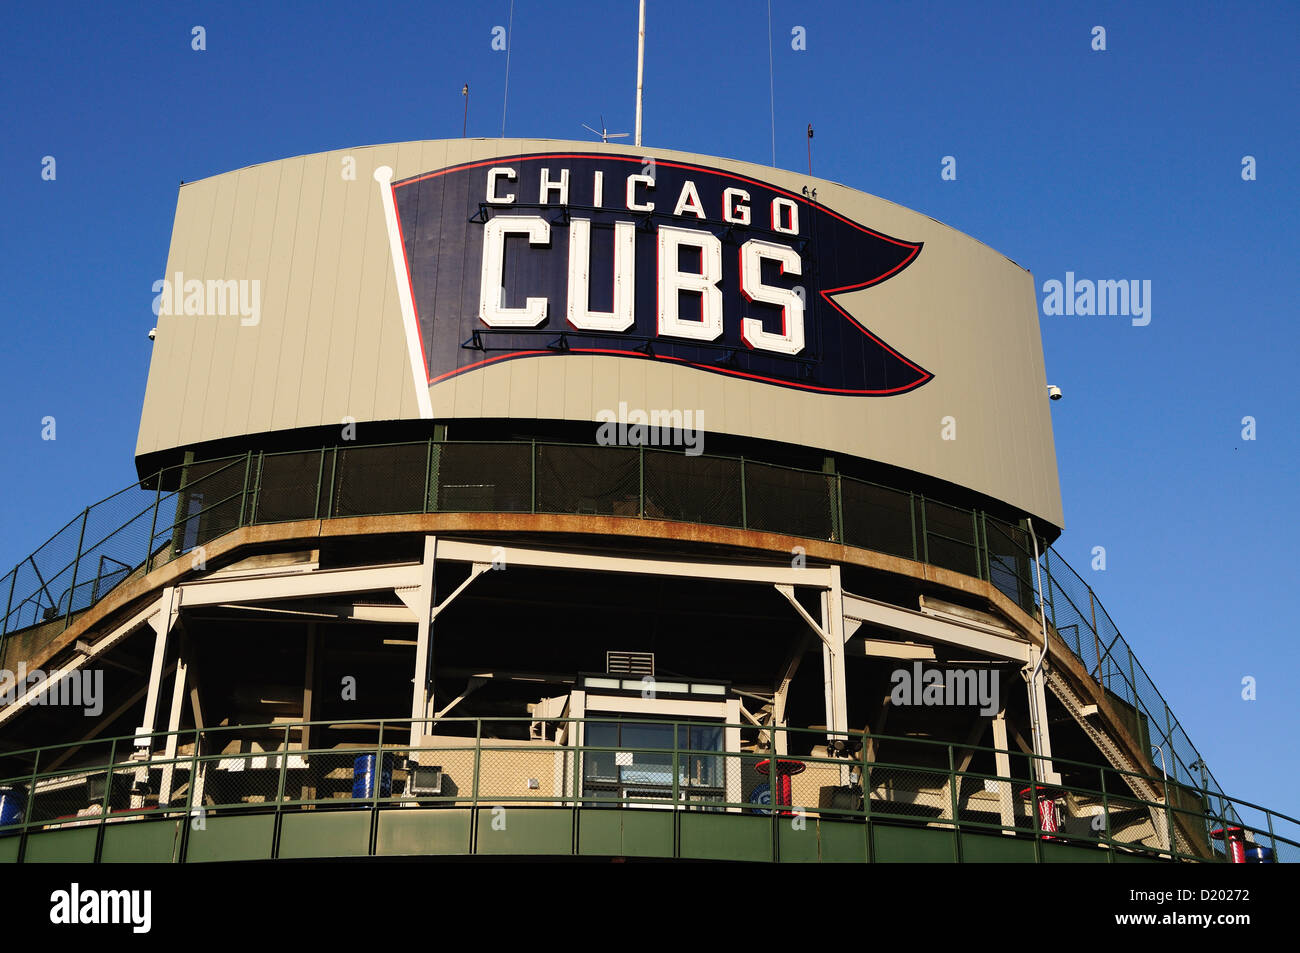 USA Illinois Chicago Wrigley Field marquee on the back side of the ballpark's scoreboard rests above the bleacher - Stock Image